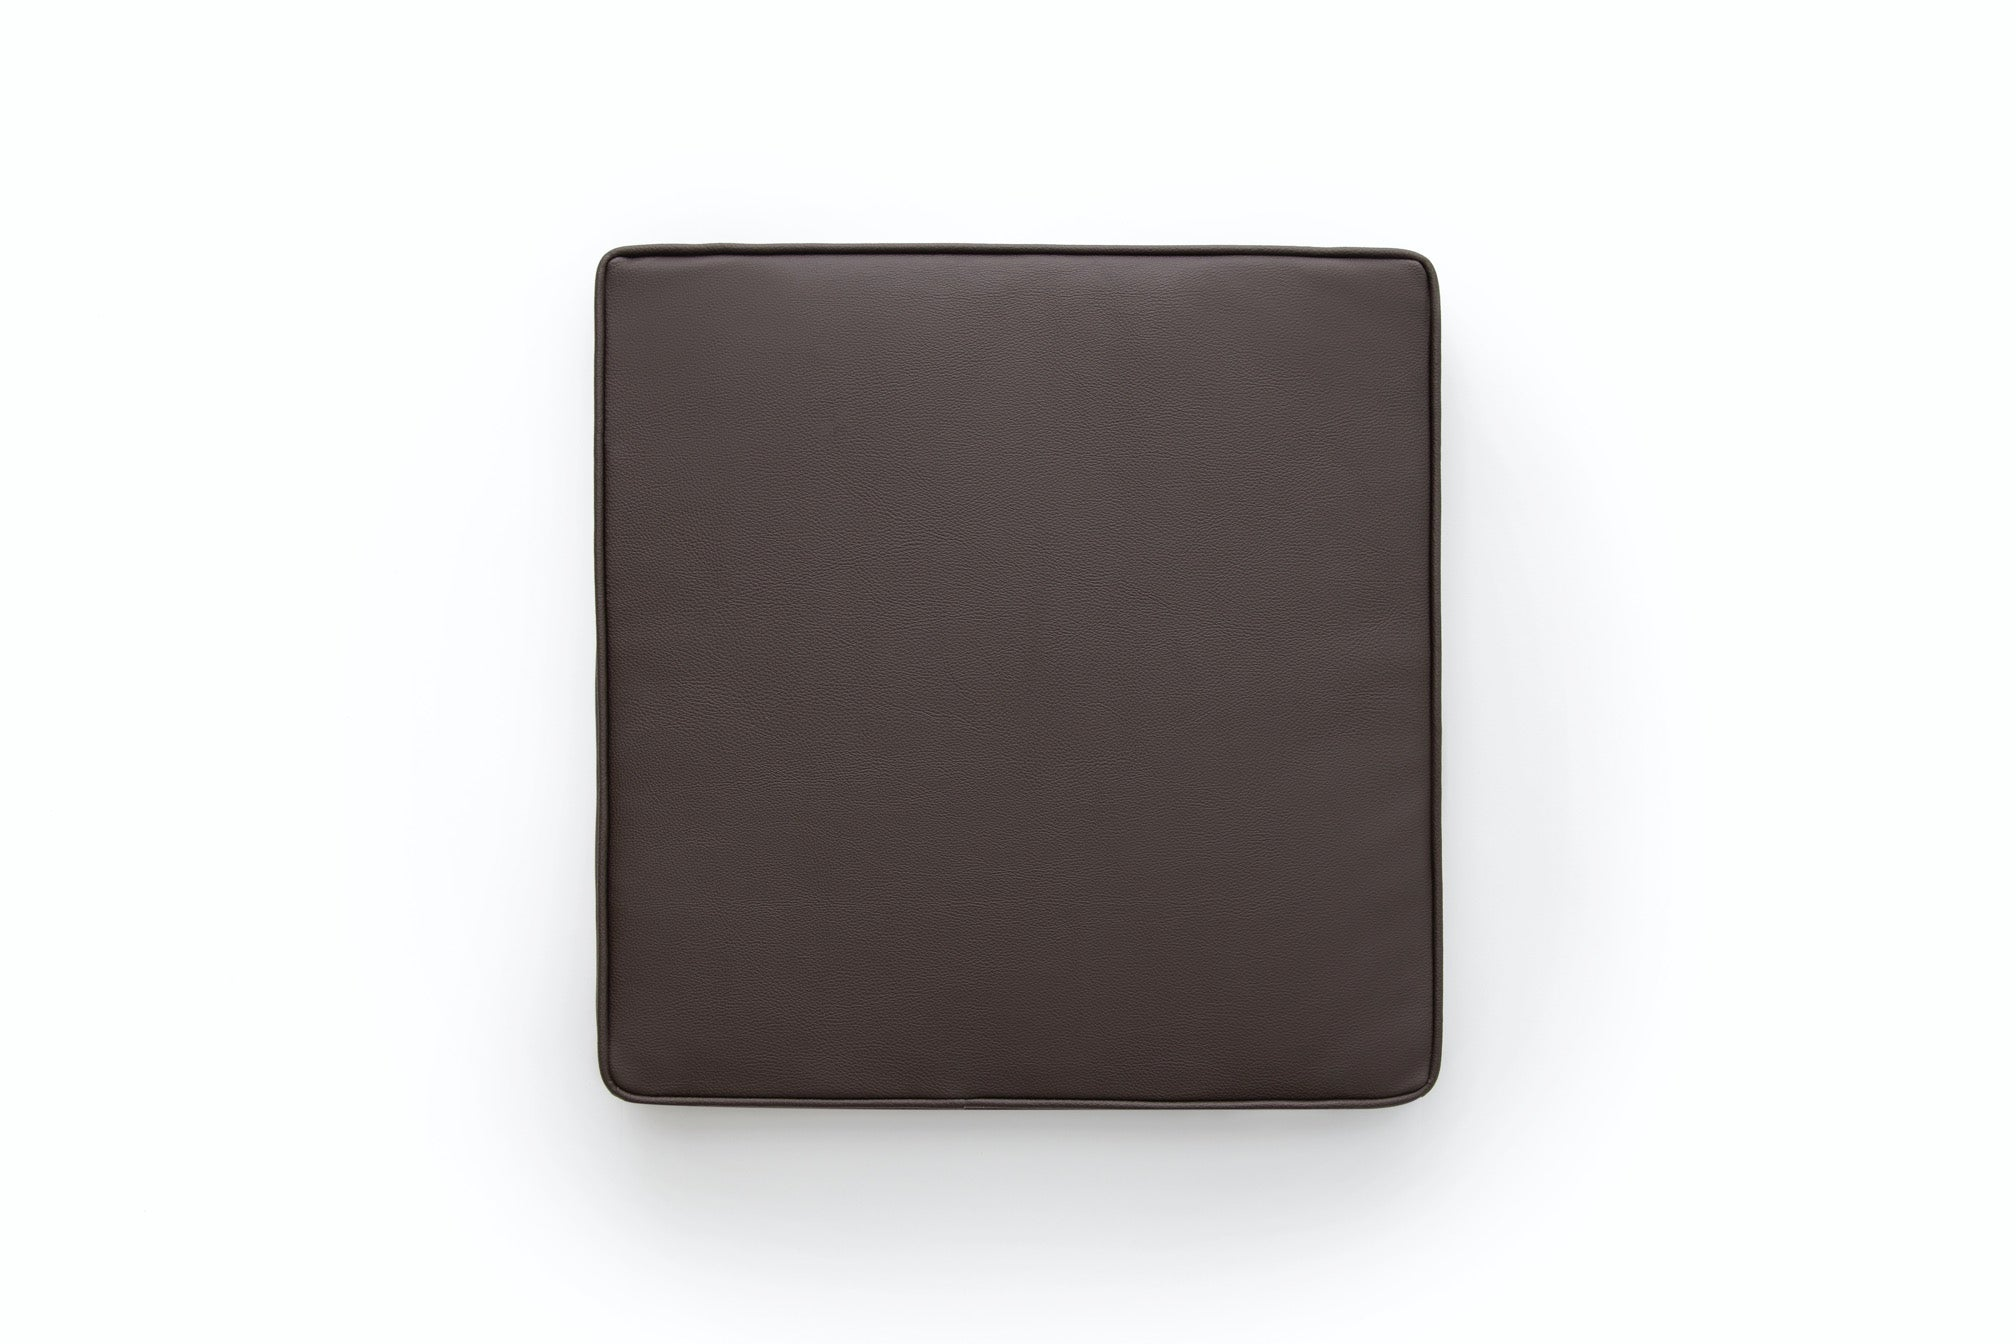 Seating pad - Brown leather